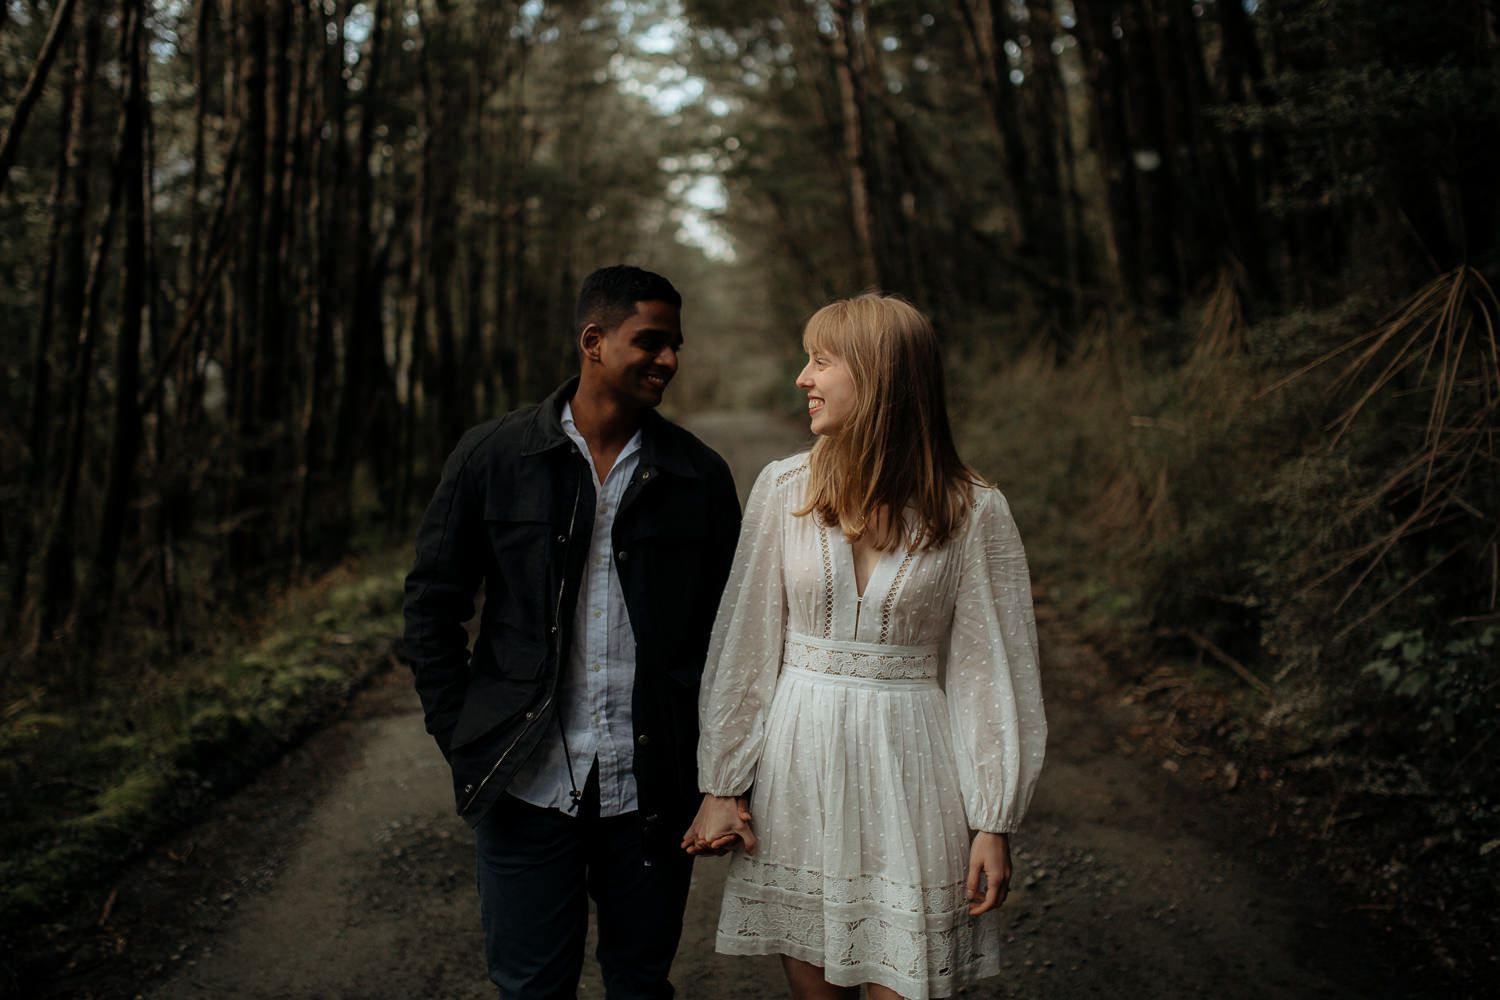 New-zealand-engagement-shoot-4422-2.jpg